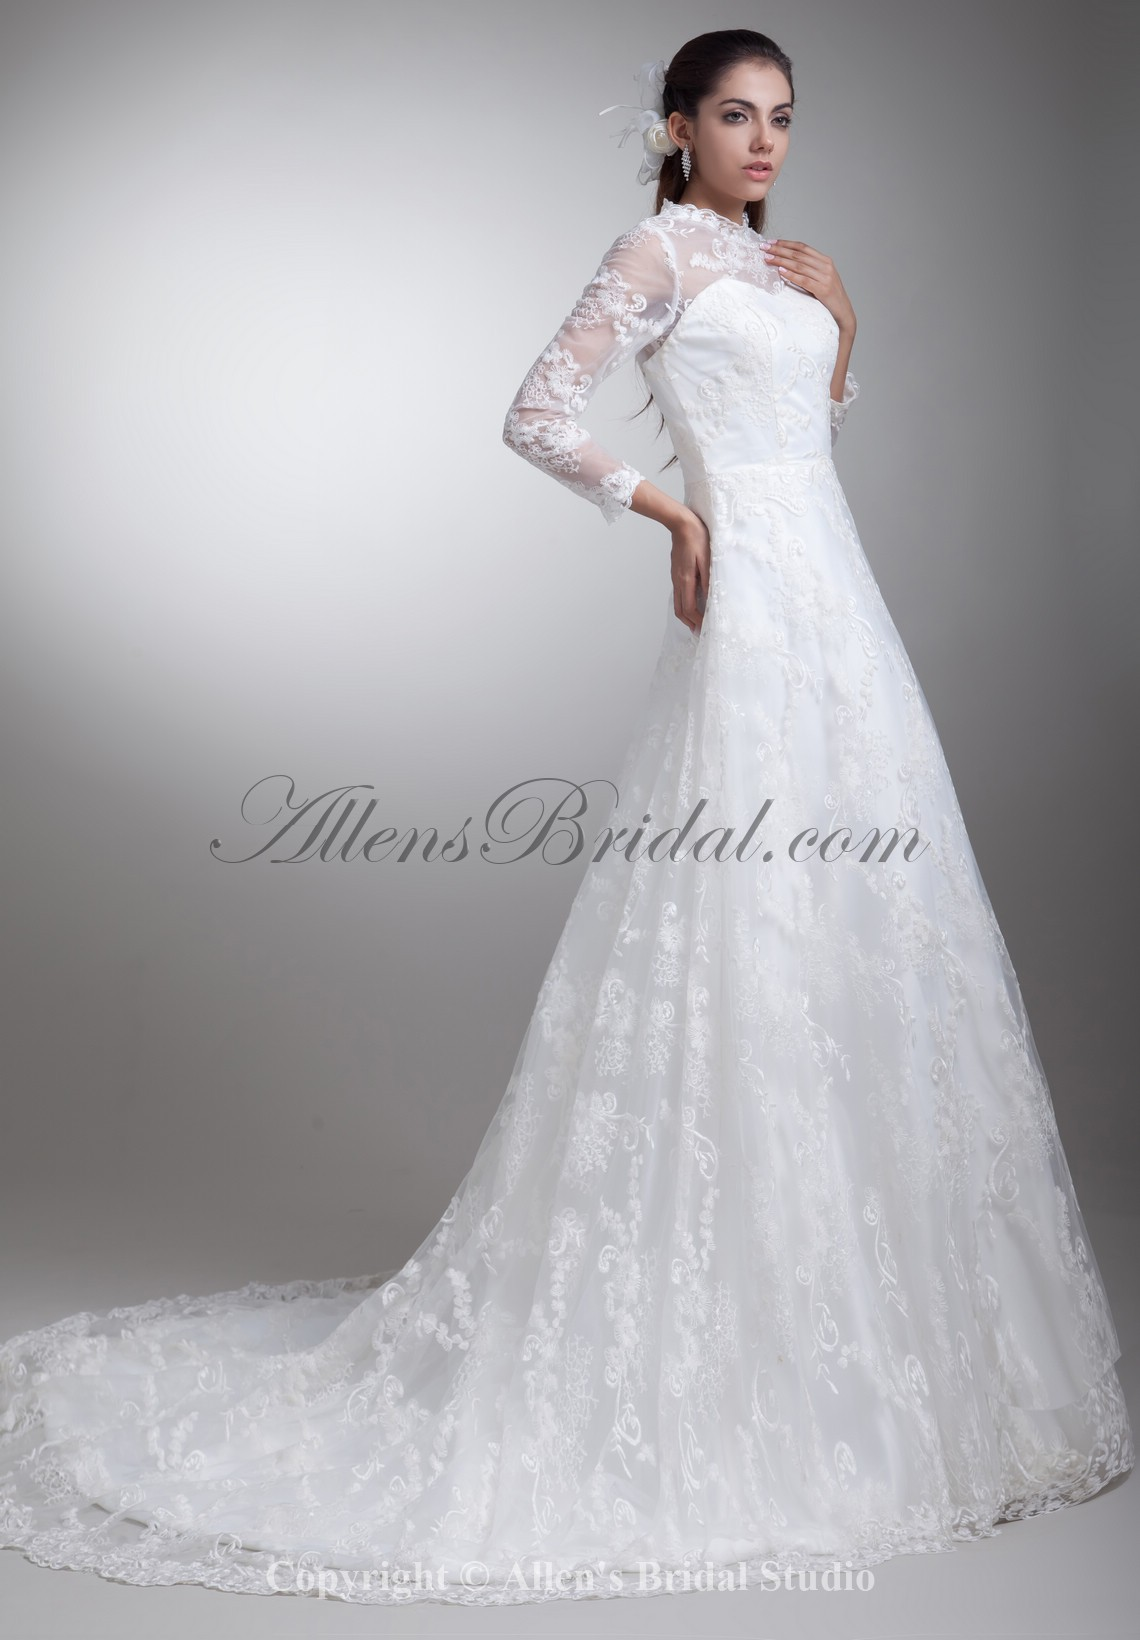 /796-6376/satin-and-lace-jewel-neckline-sweep-train-a-line-three-quarter-sleeves-wedding-dress.jpg